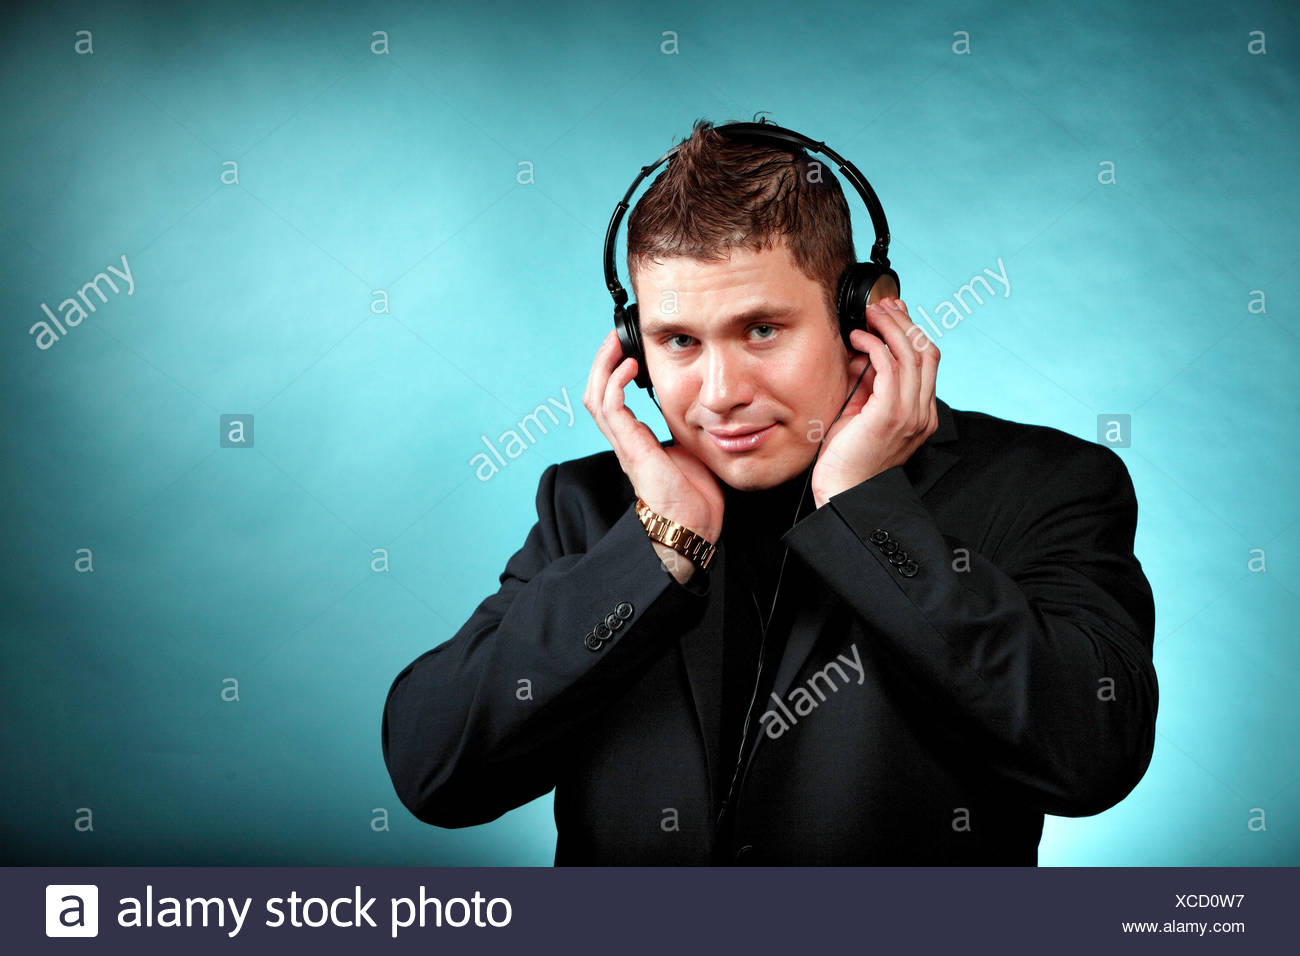 Young Happy Man Student With Headphones Listening To Music